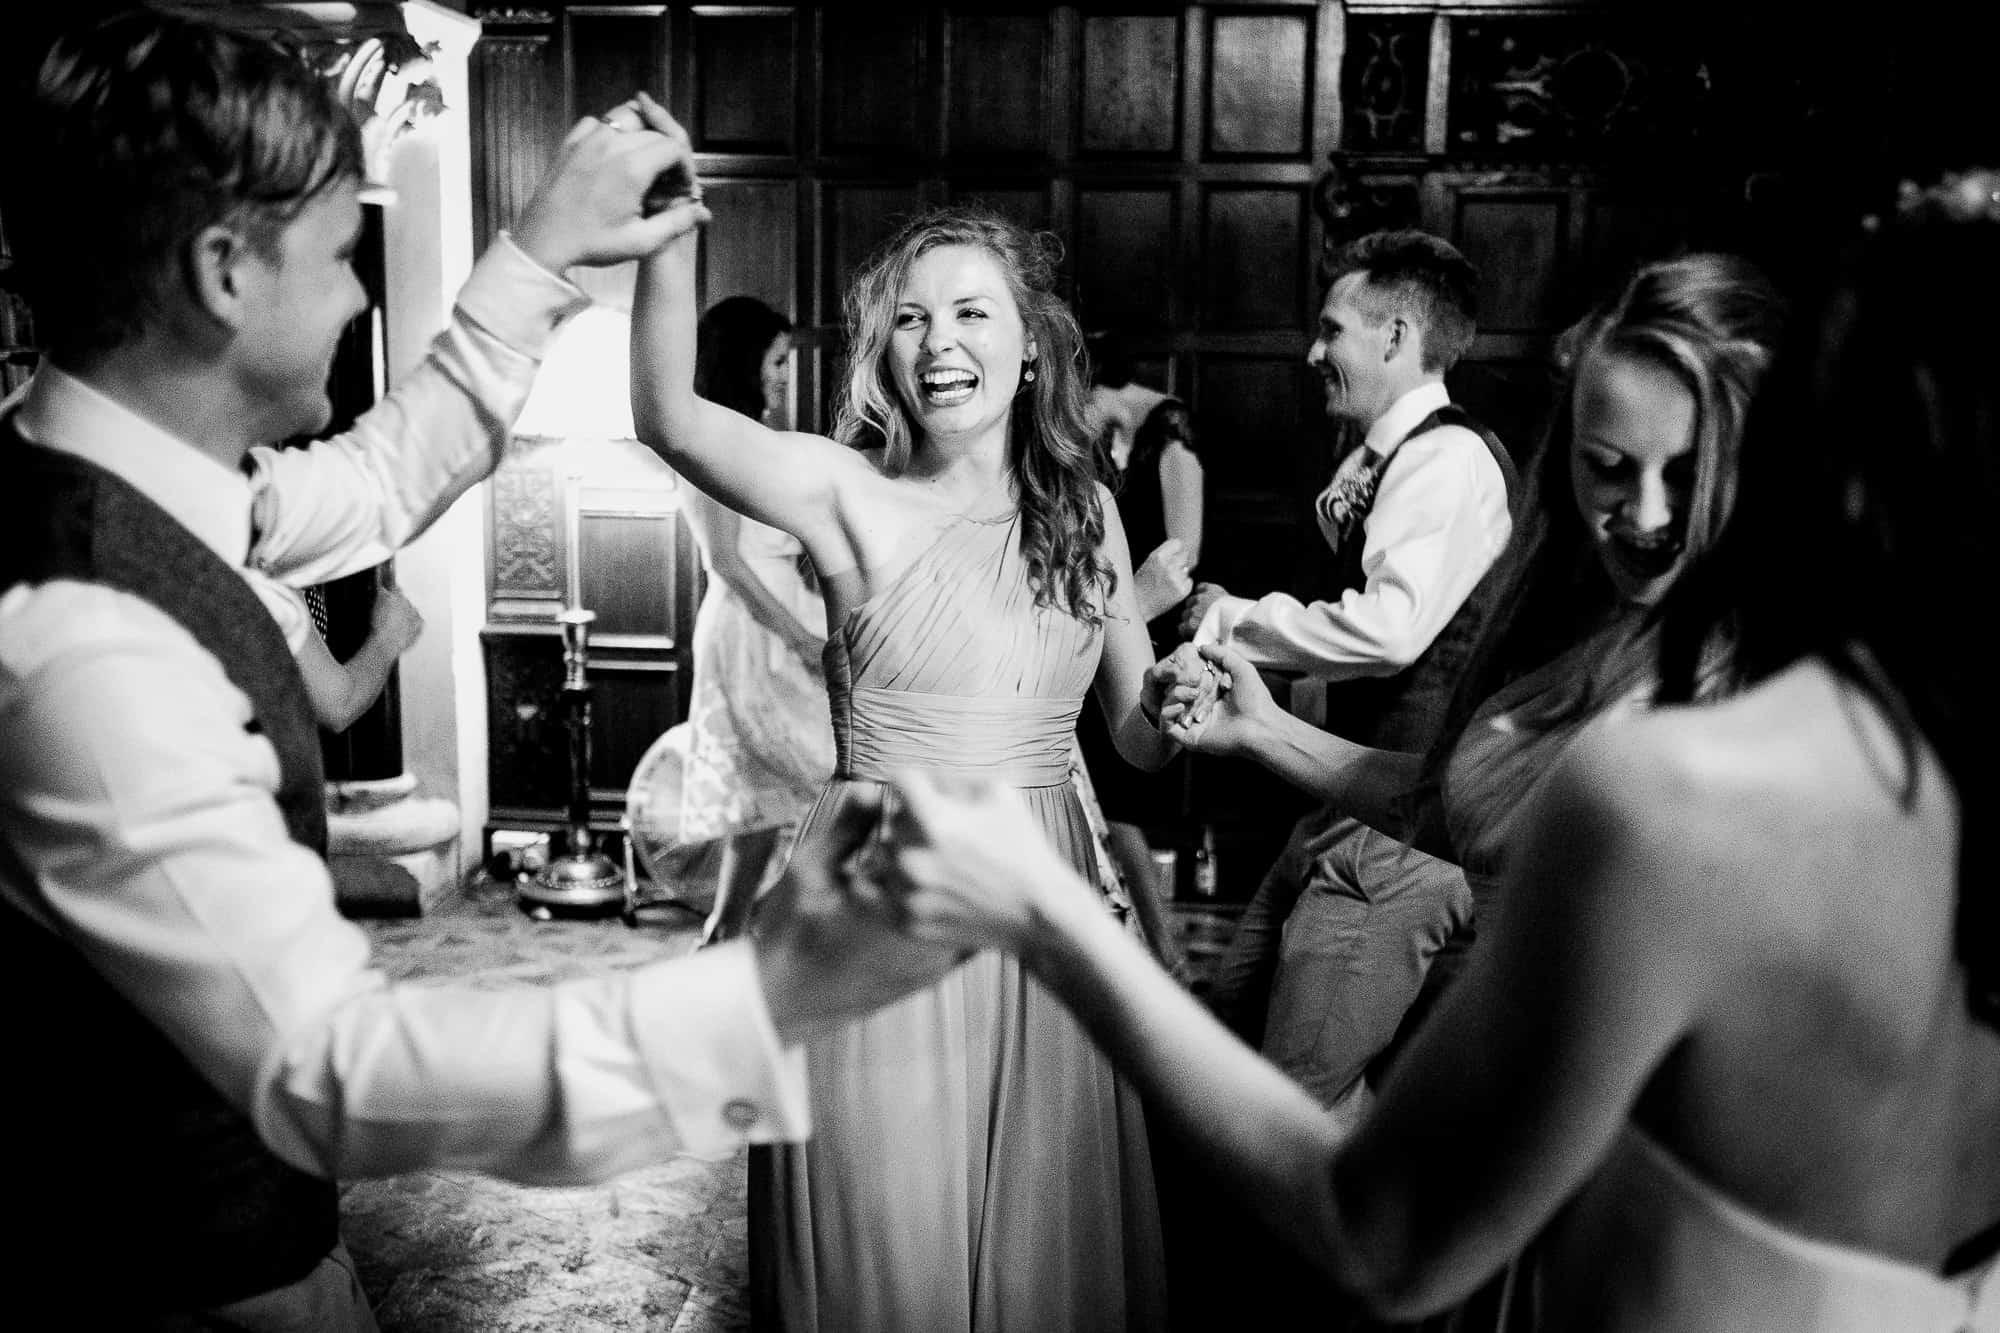 huntsham-court-wedding-photography-matt-tyler-0072